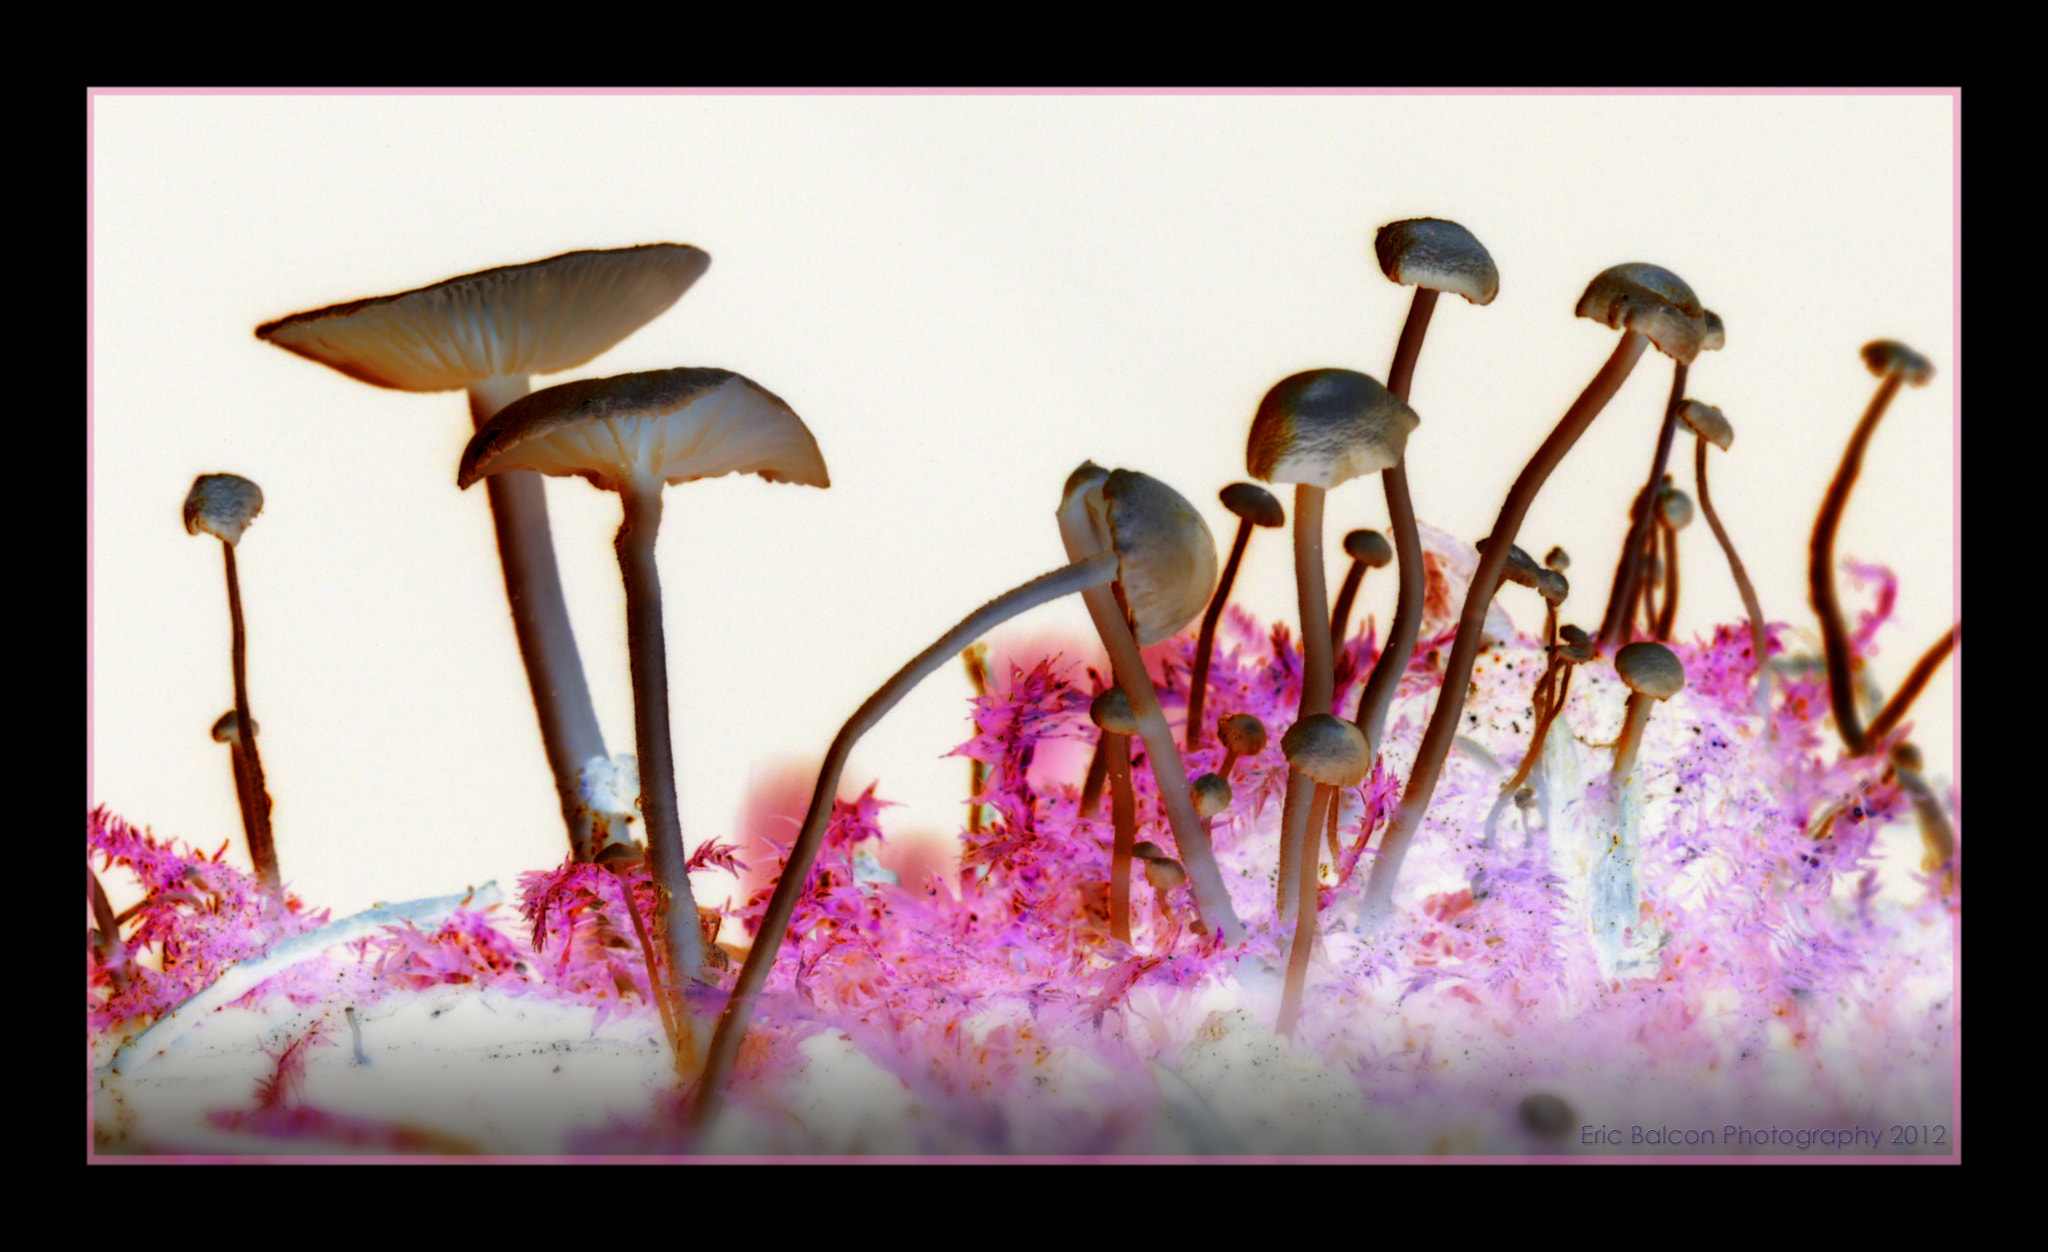 Photograph Inverted Mushrooms by Eric Balcon on 500px